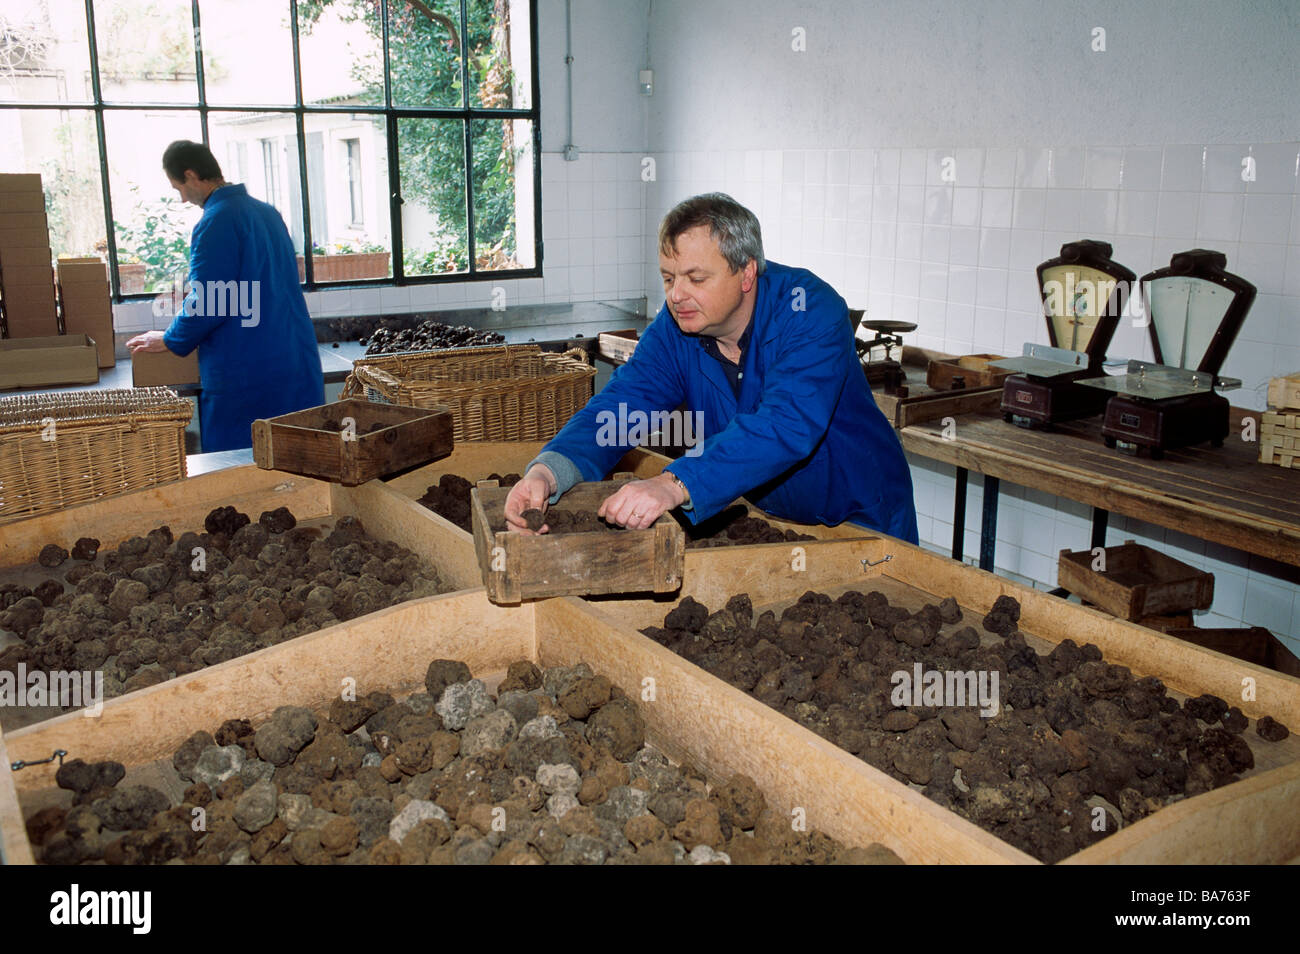 France, Lot, Cahors, Maison Pebeyre, truffles dealers since 1897, Pierre-Jean Pebeyre in front of truffles sorting - Stock Image